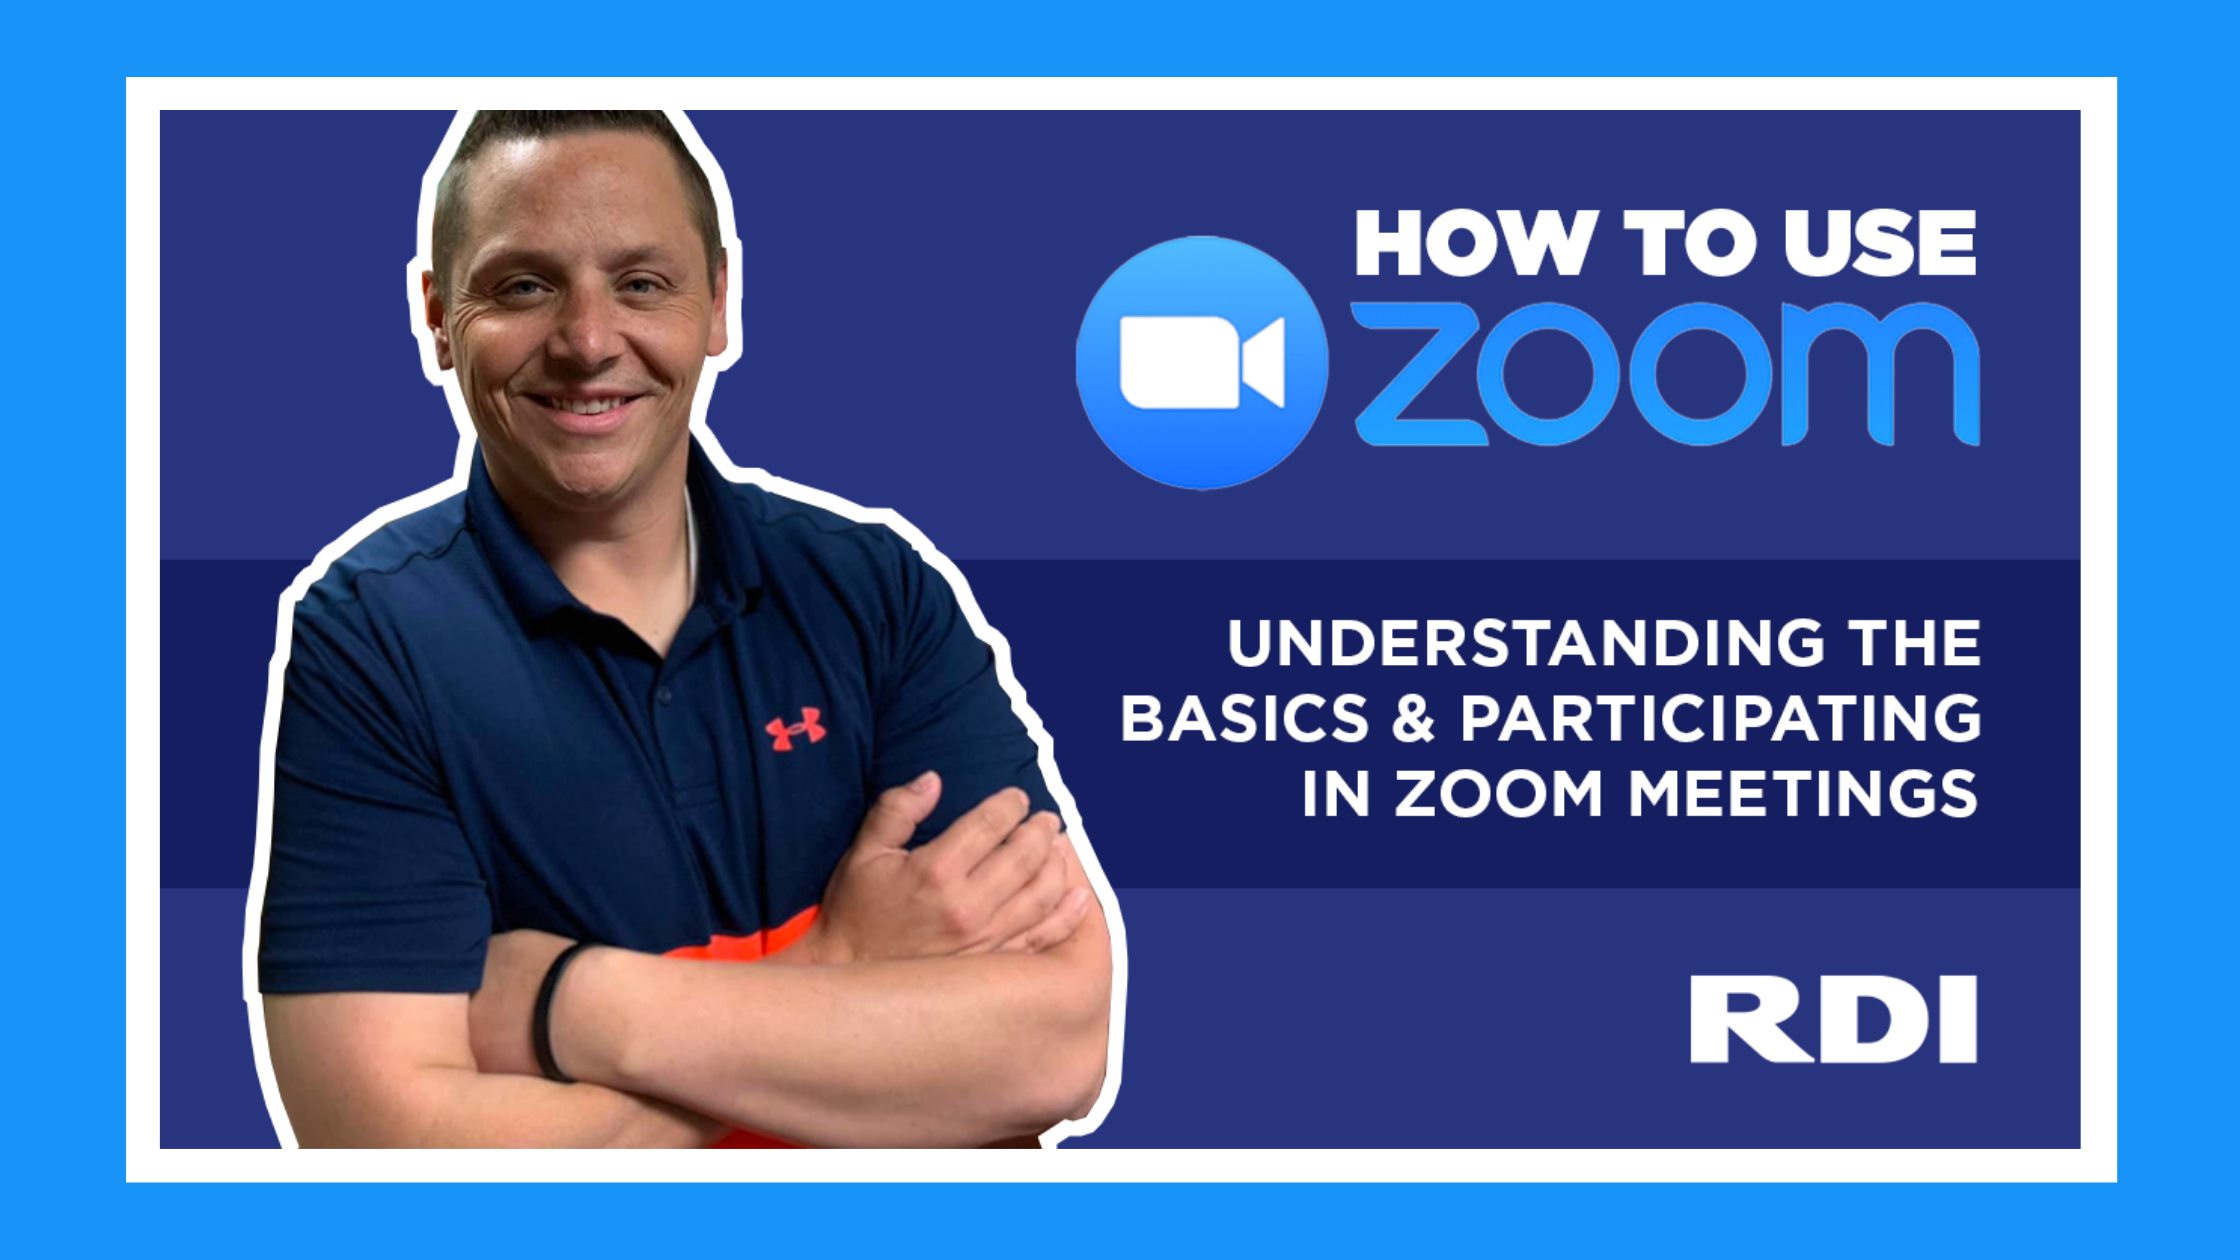 How to Use Zoom - The Basics and Participating in Zoom Meetings